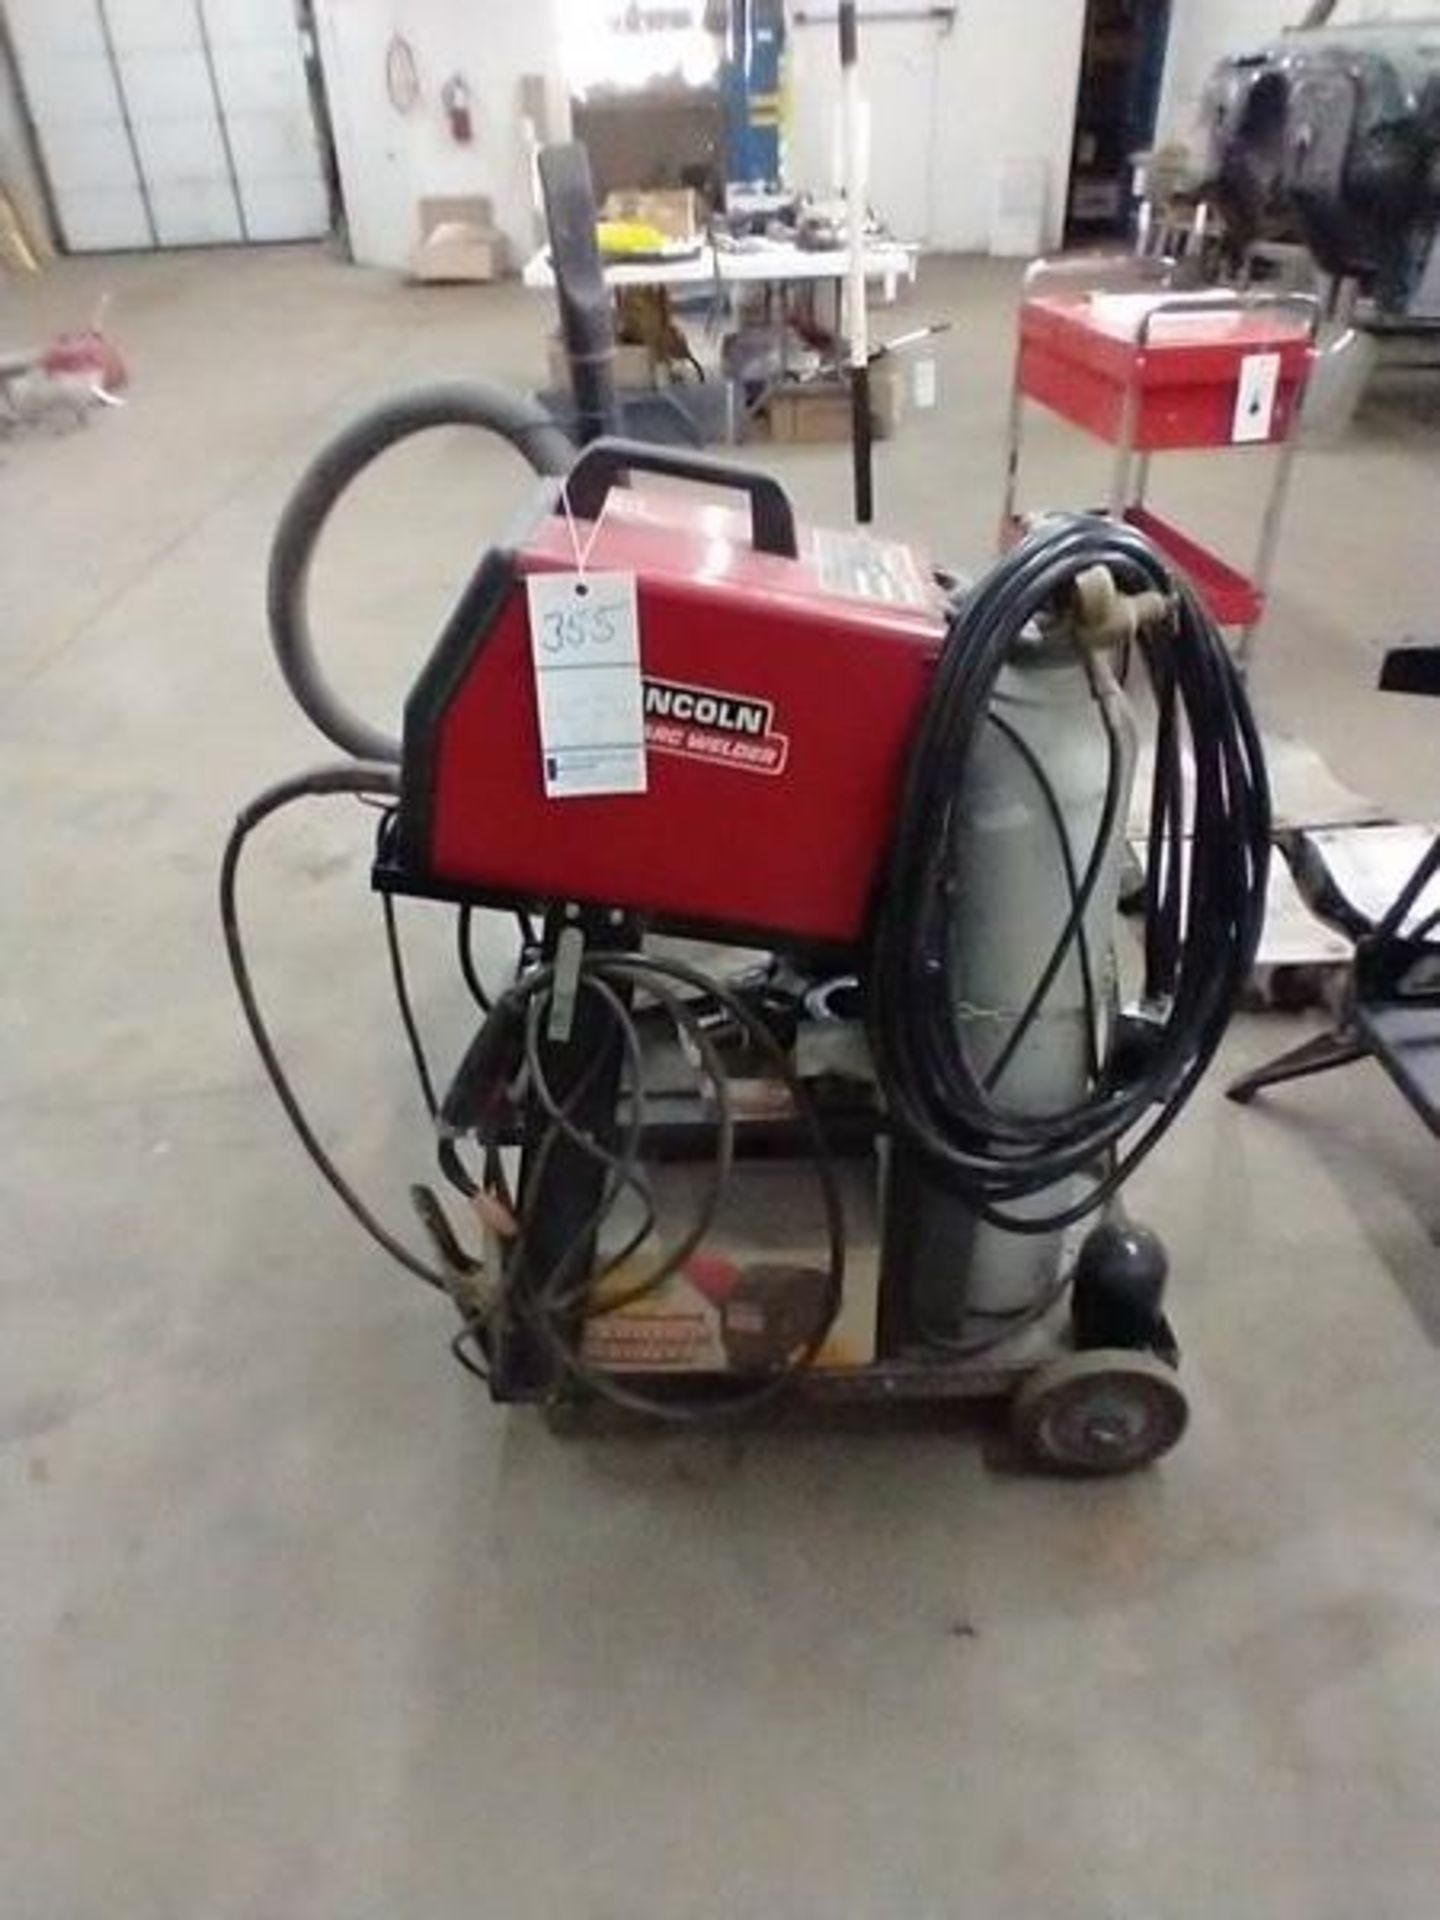 LINCOLN ARC WELDER SP-130T WITH CART AND CONTENTS - Image 4 of 5